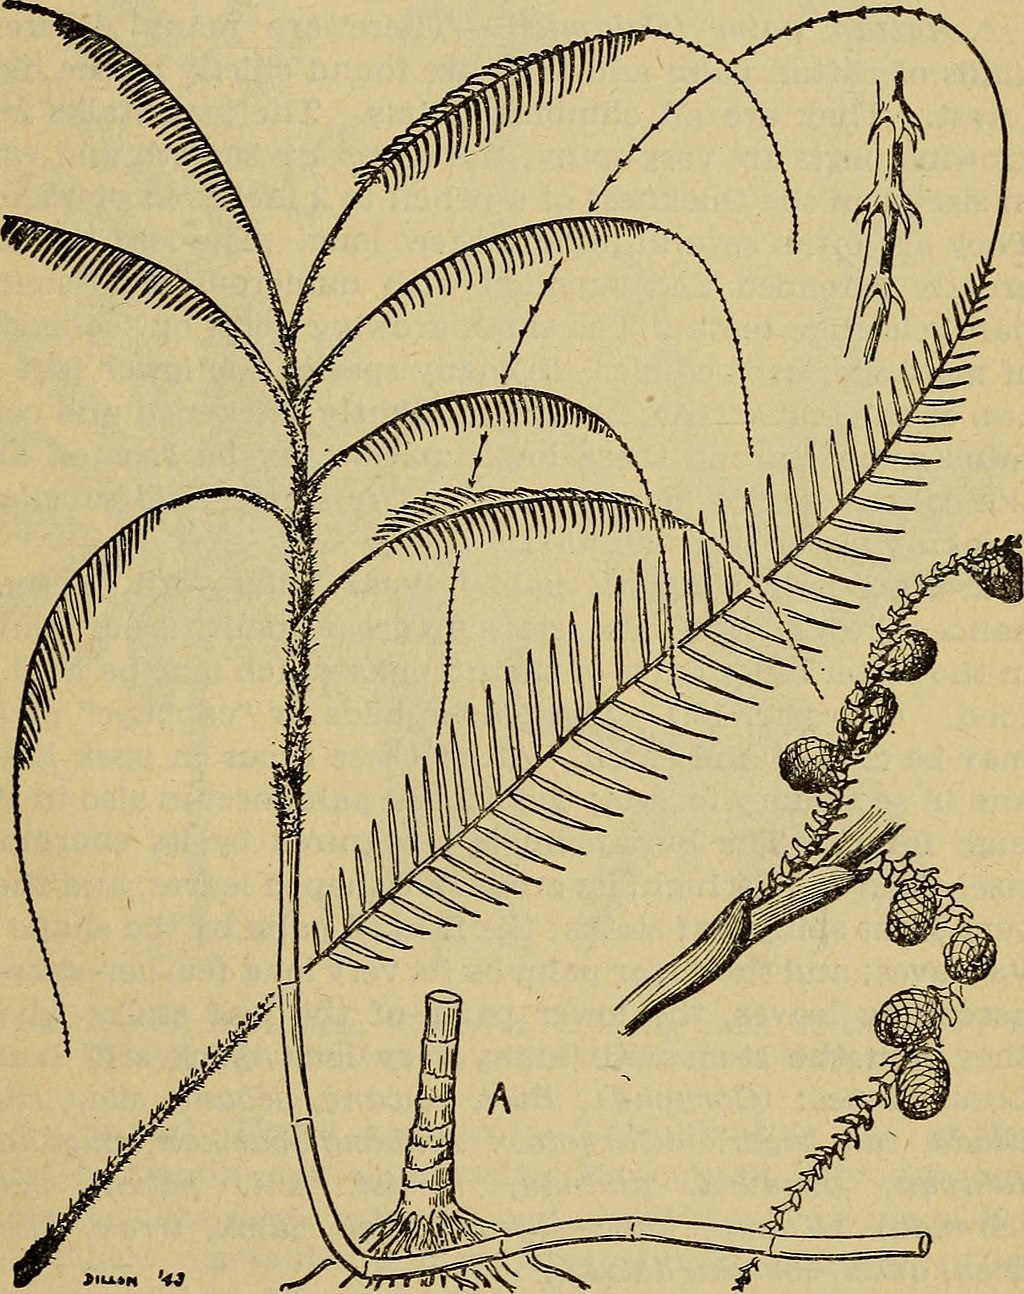 Emergency_food_plants_and_poisonous_plants_of_the_islands_of_the_Pacific_(1943)_(21296633031).jpg